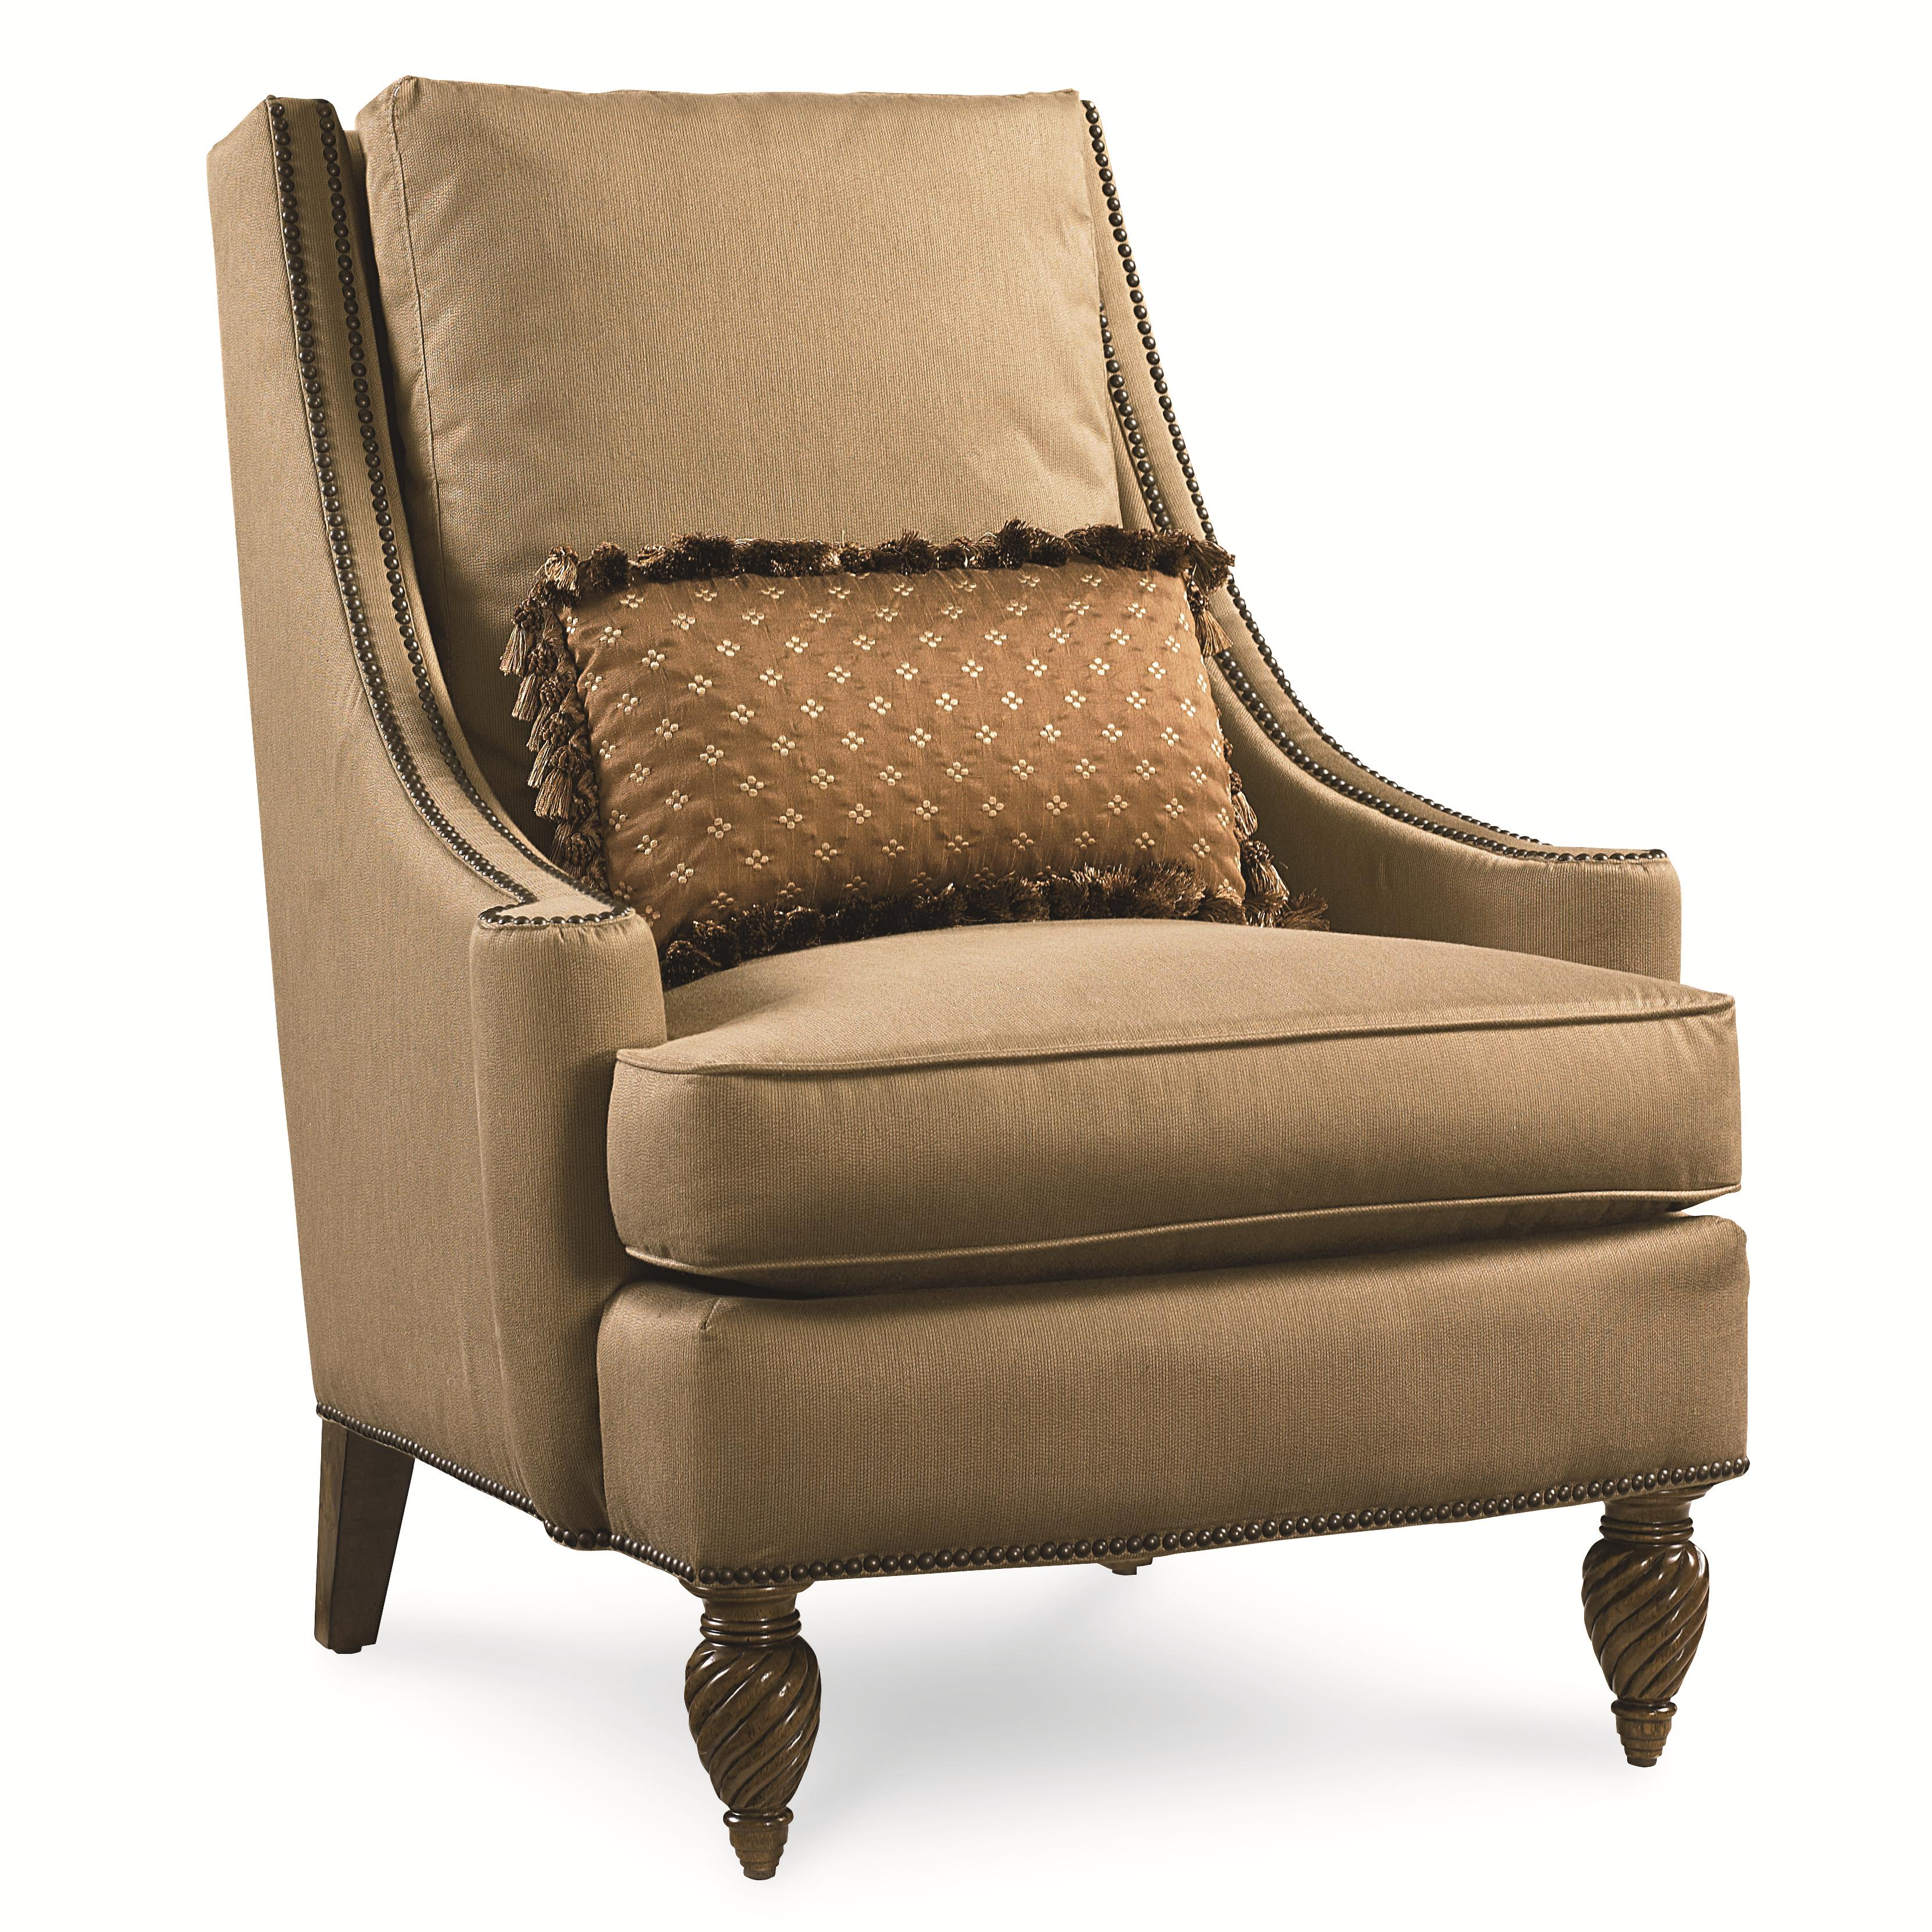 accent chairs on clearance chair hammock stand uk legacy classic pemberleigh in brandy 3100 902